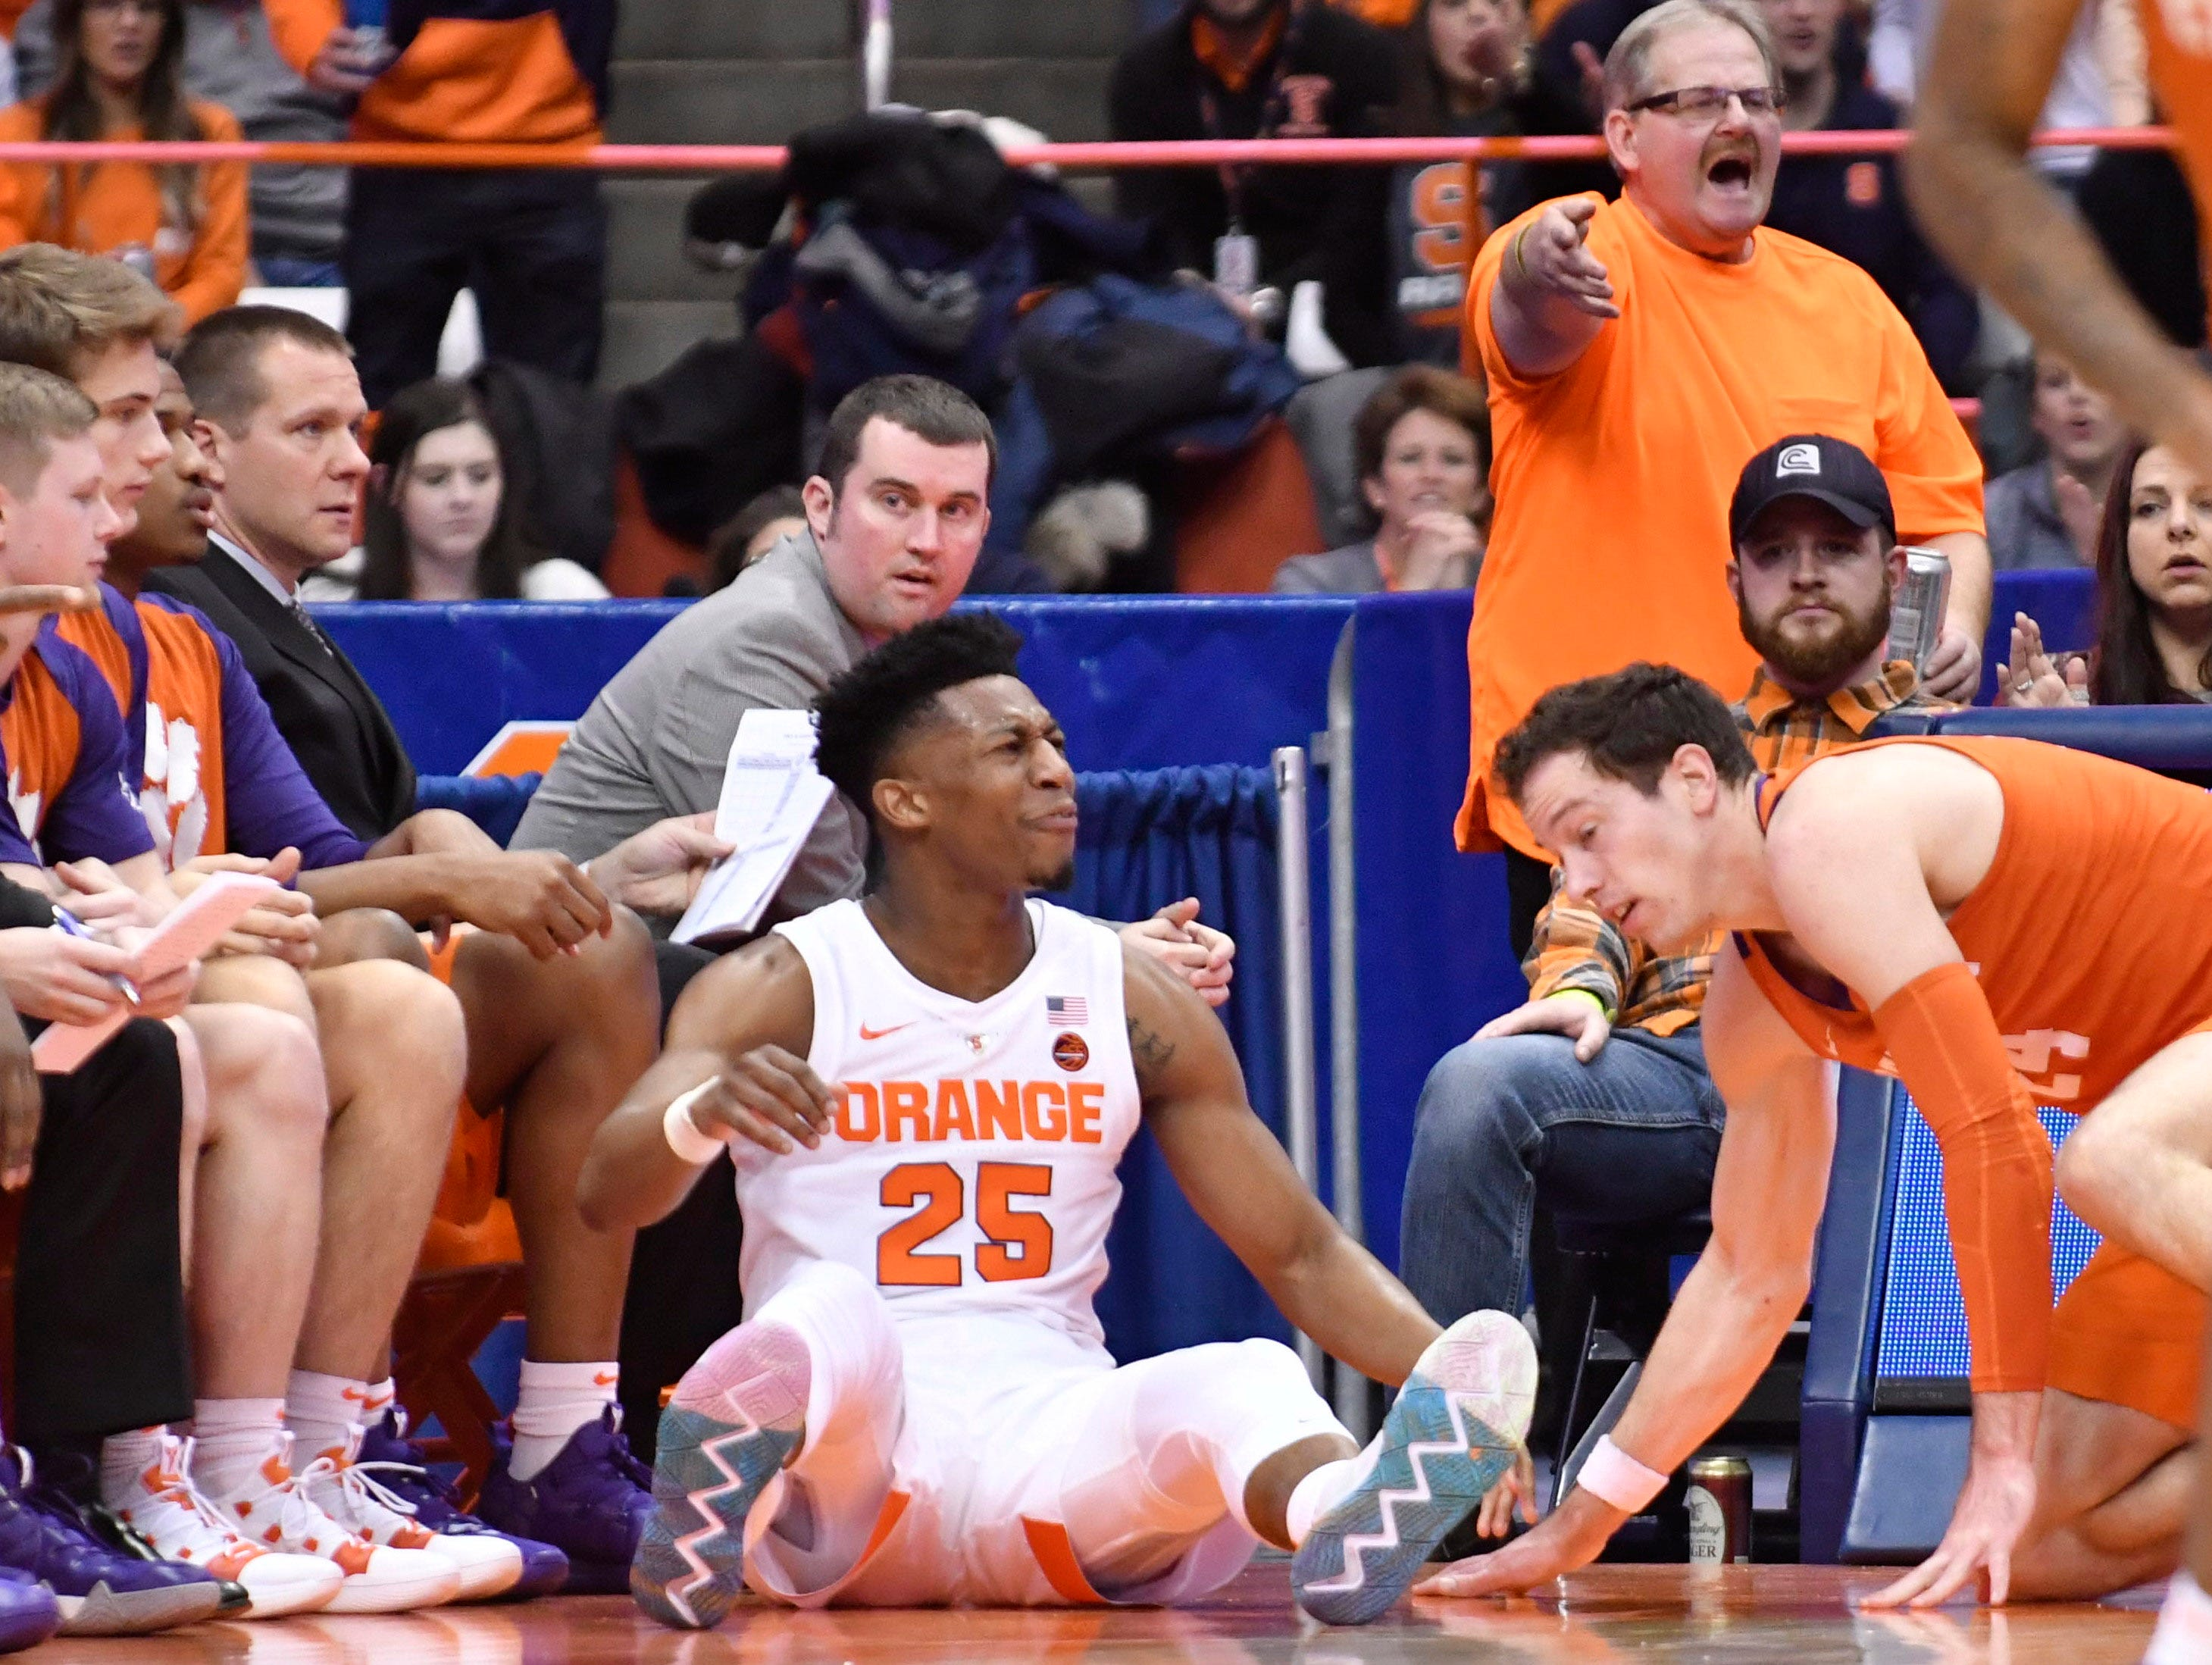 Jan 9, 2019; Syracuse, NY, USA; Syracuse Orange guard Tyus Battle (25) reacts to being knocked to the floor by Clemson Tigers forward David Skara (24) during the first half at the Carrier Dome.